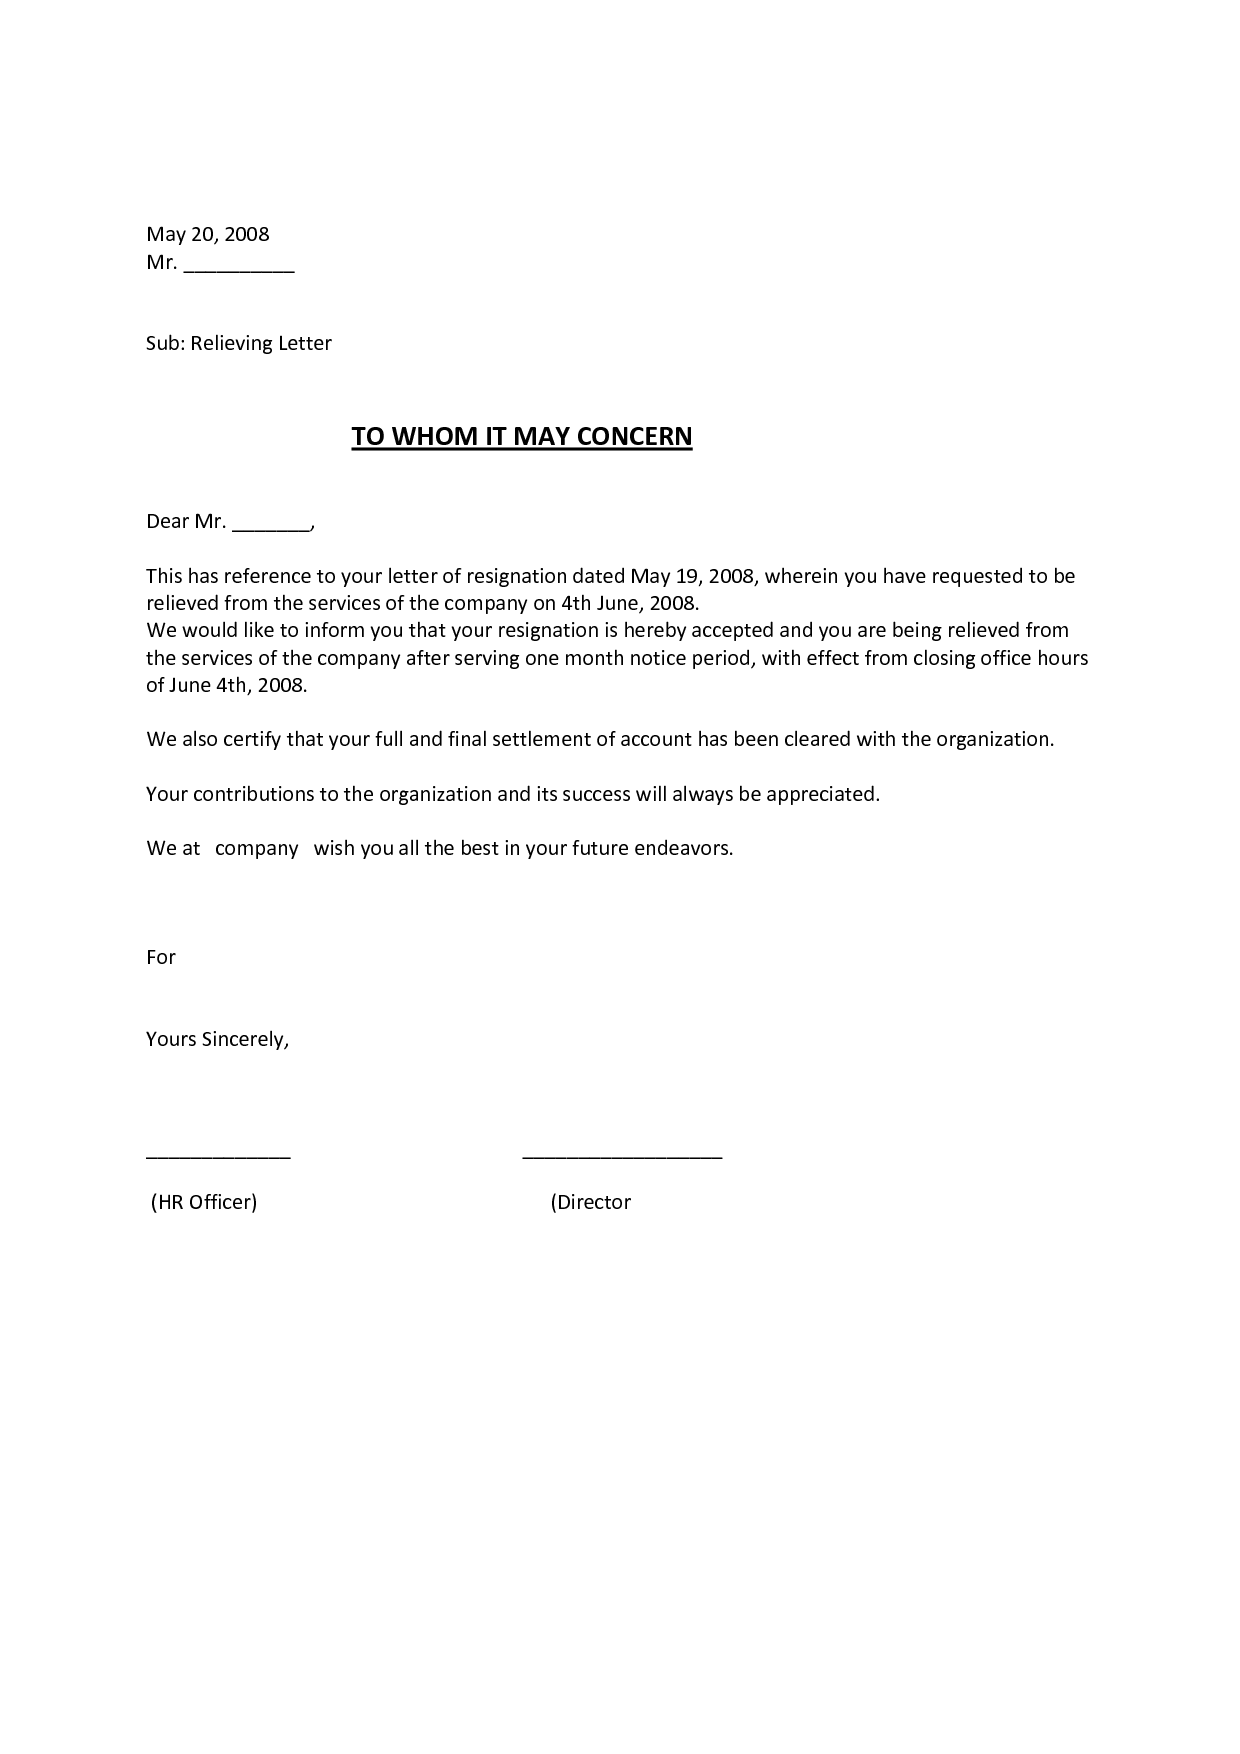 Relieving letter format for employee free download aba employee relieving letter a relieving letter is meant to relieve the employee who is no longer associated with the company thecheapjerseys